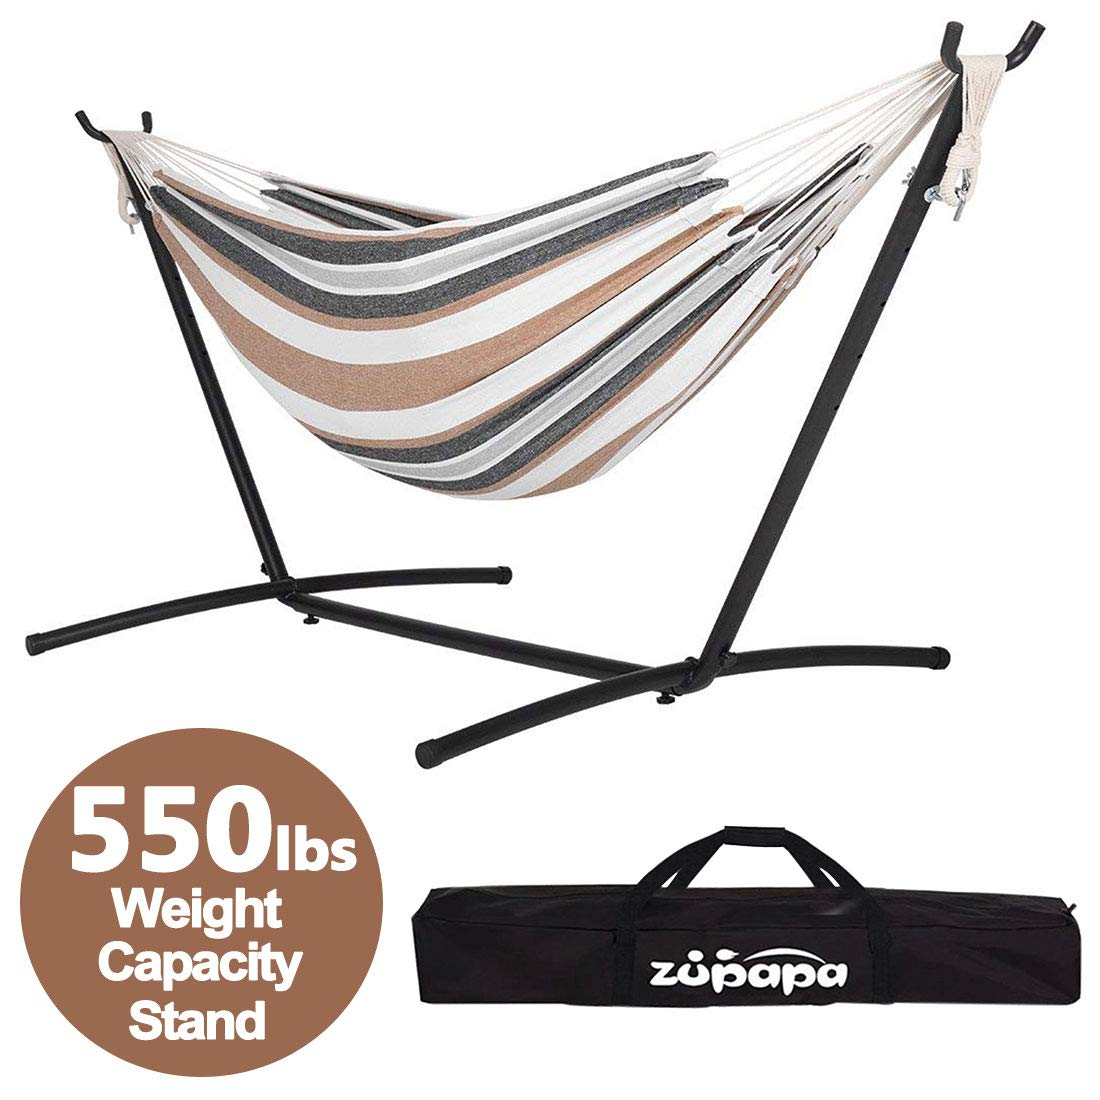 Best Hammocks With Stand Top Selling On Amazon Tophammocks